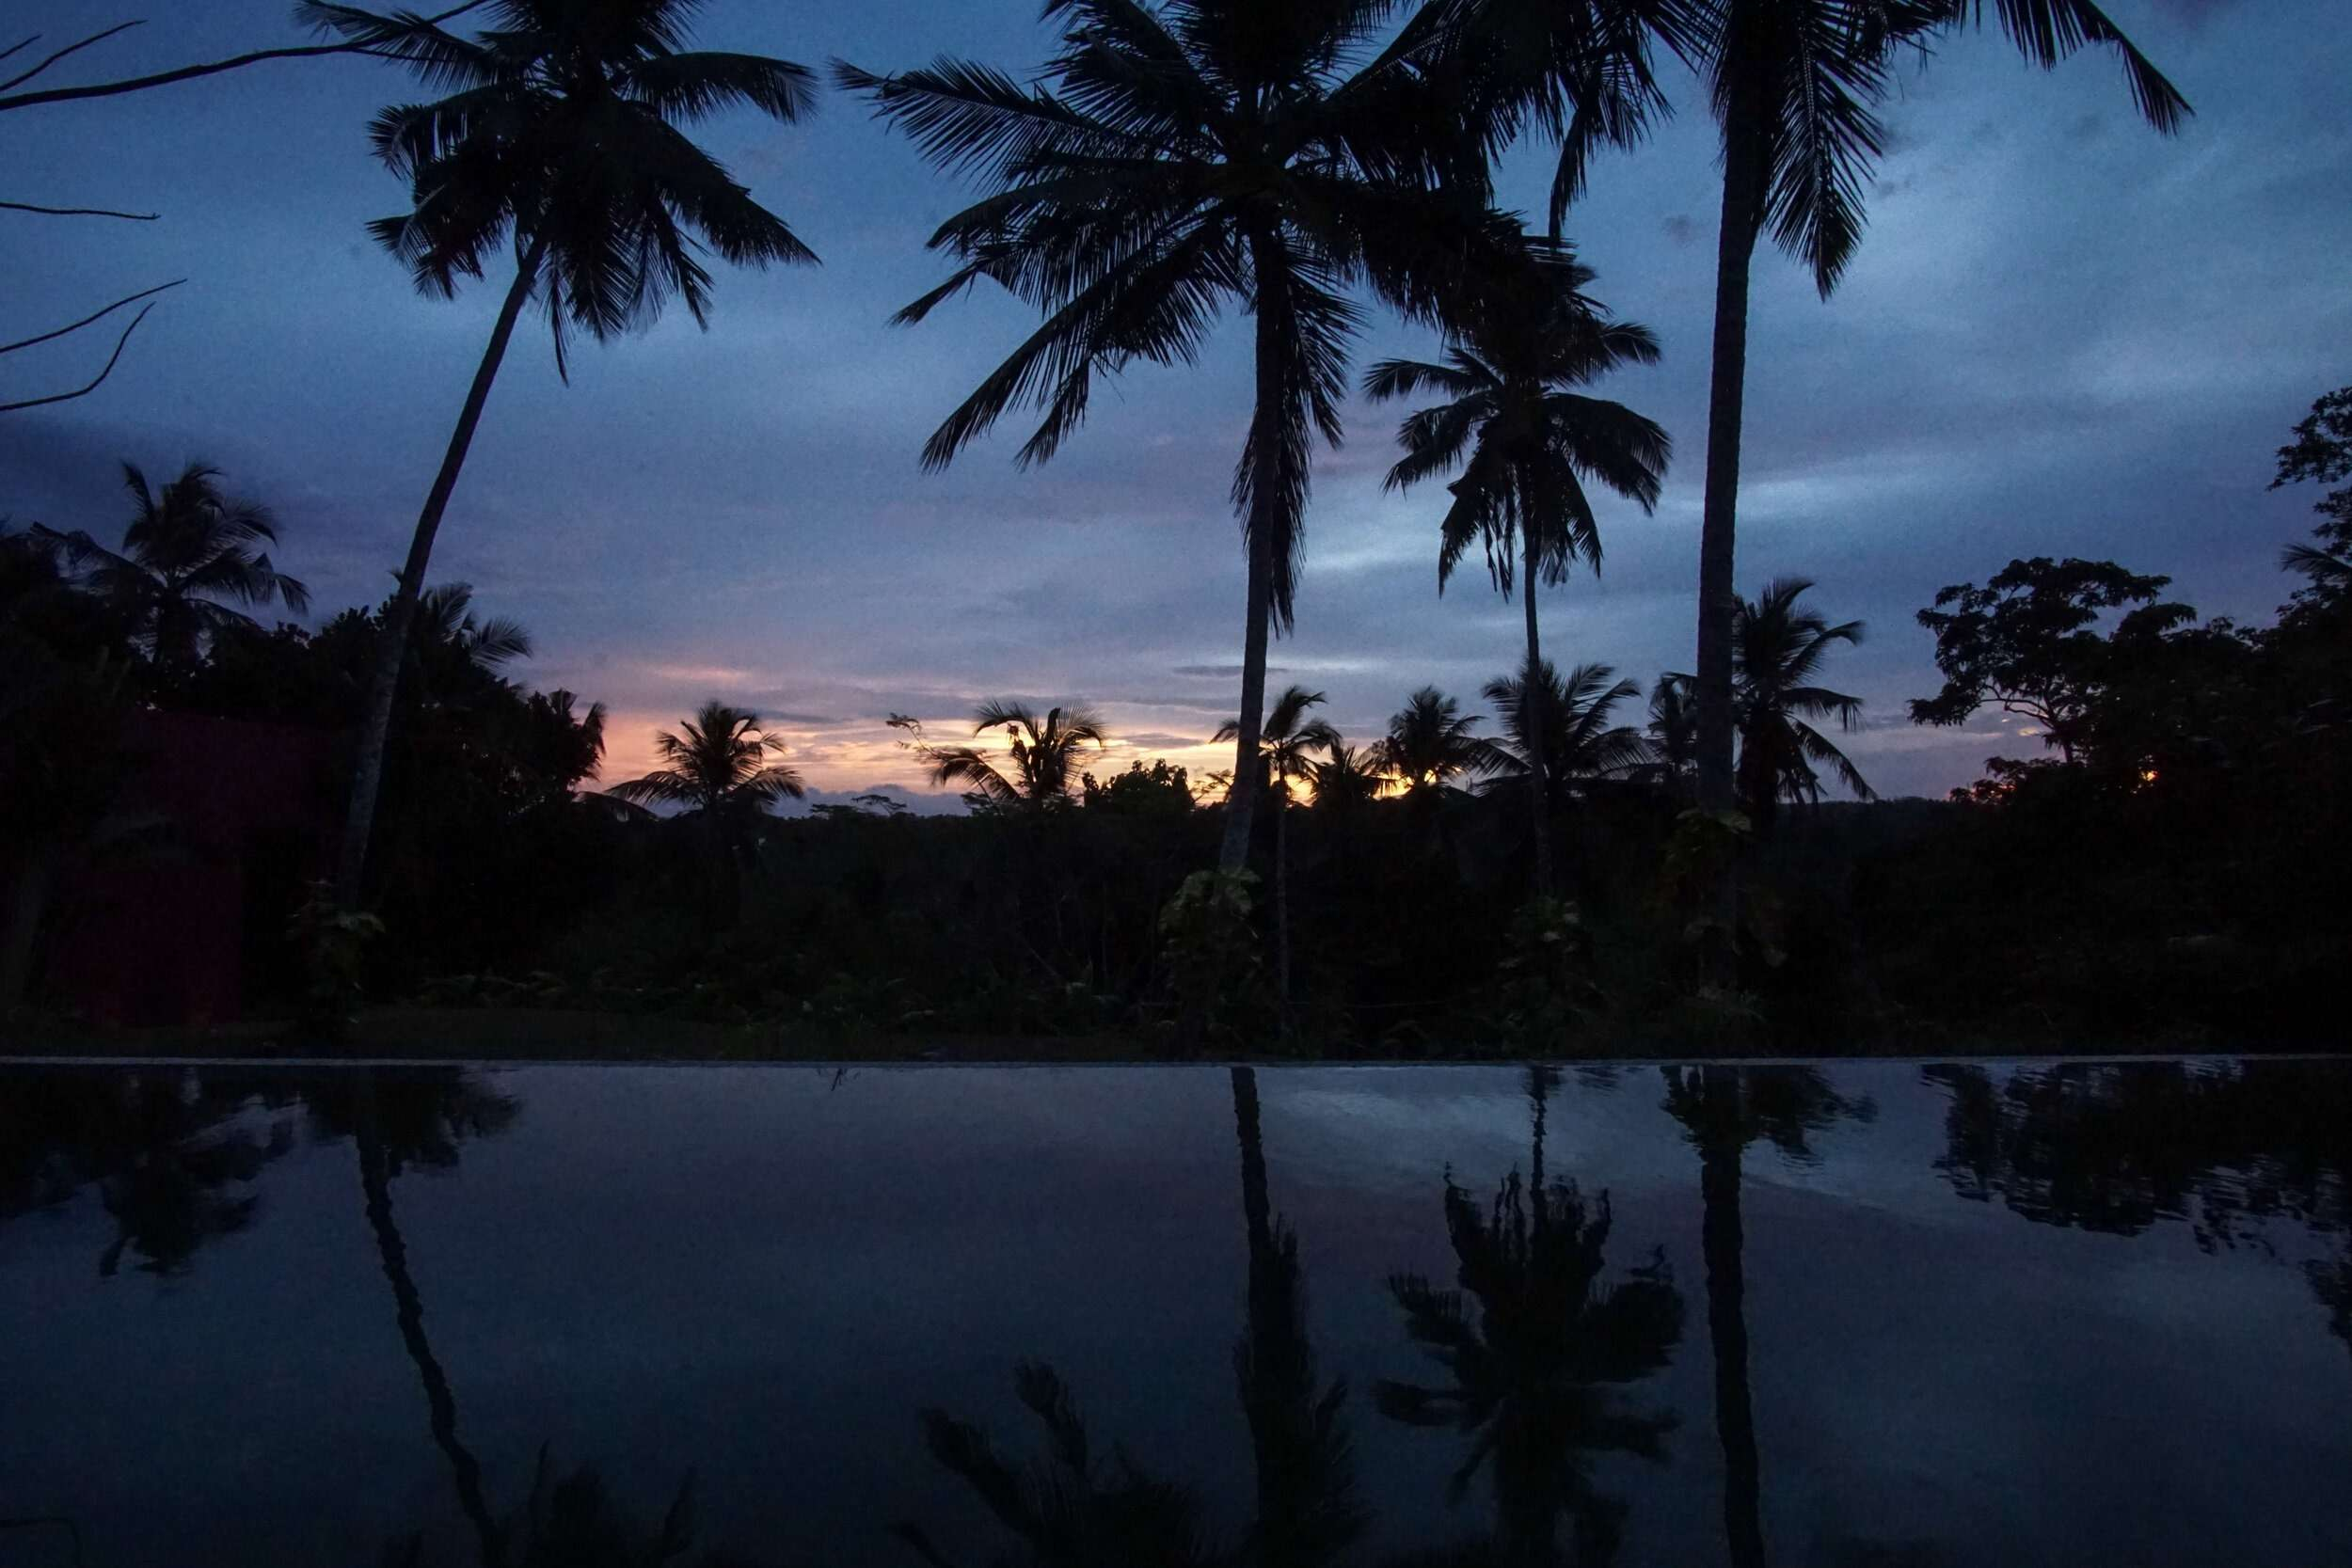 dark sunset silhouette of palm trees with reflection in the pool in front